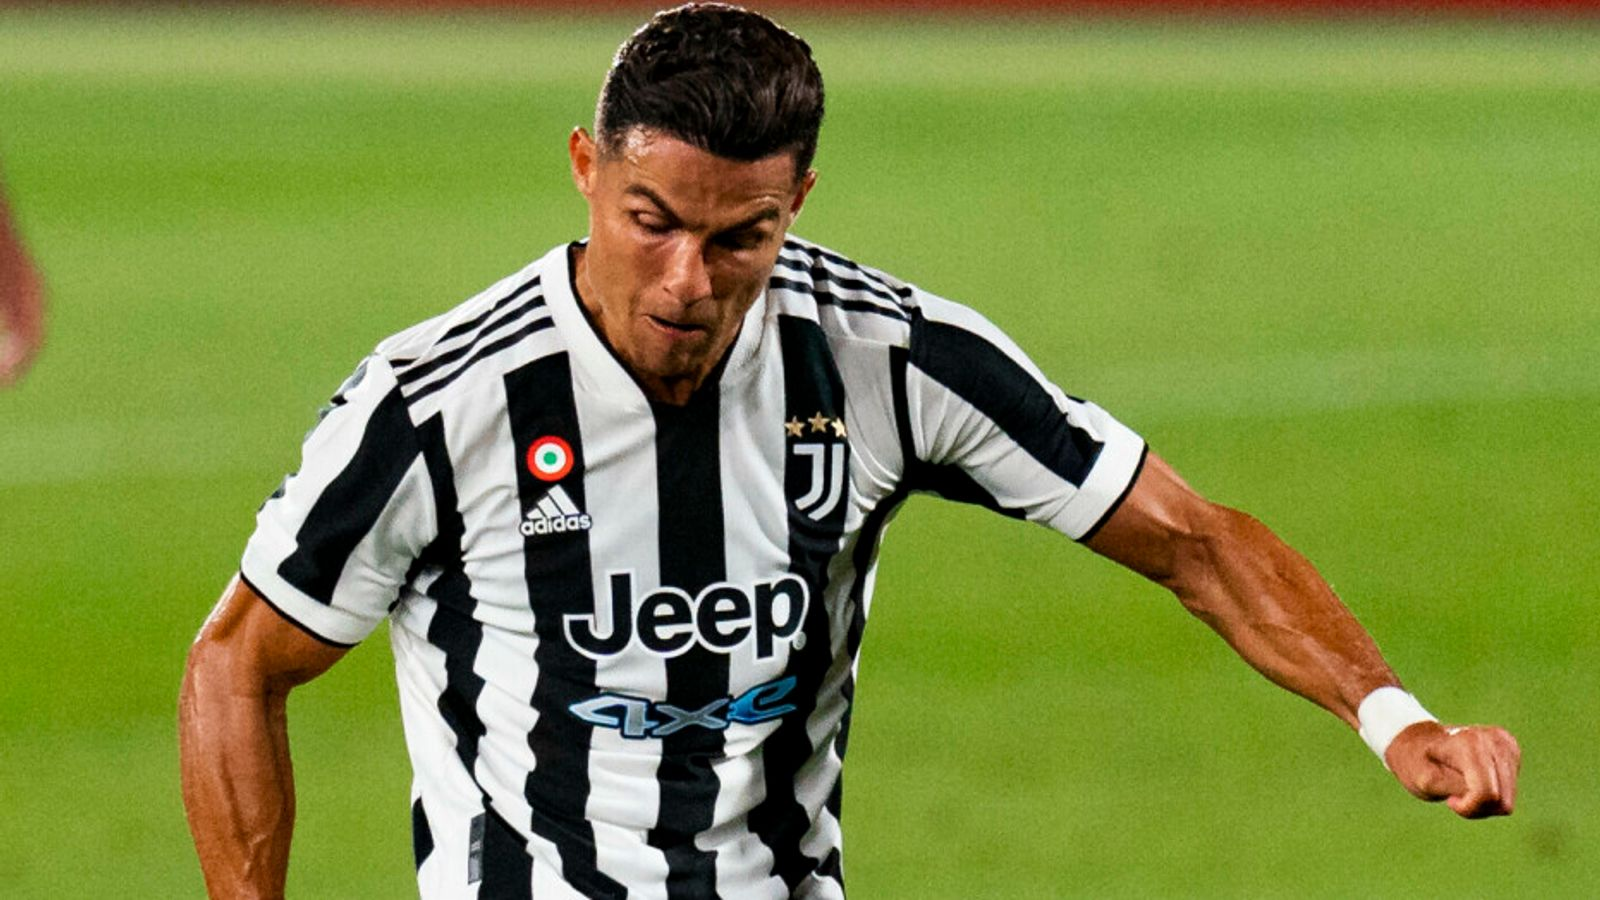 Cristiano Ronaldo has requested that he not play for Juventus against Udinese on Sunday.